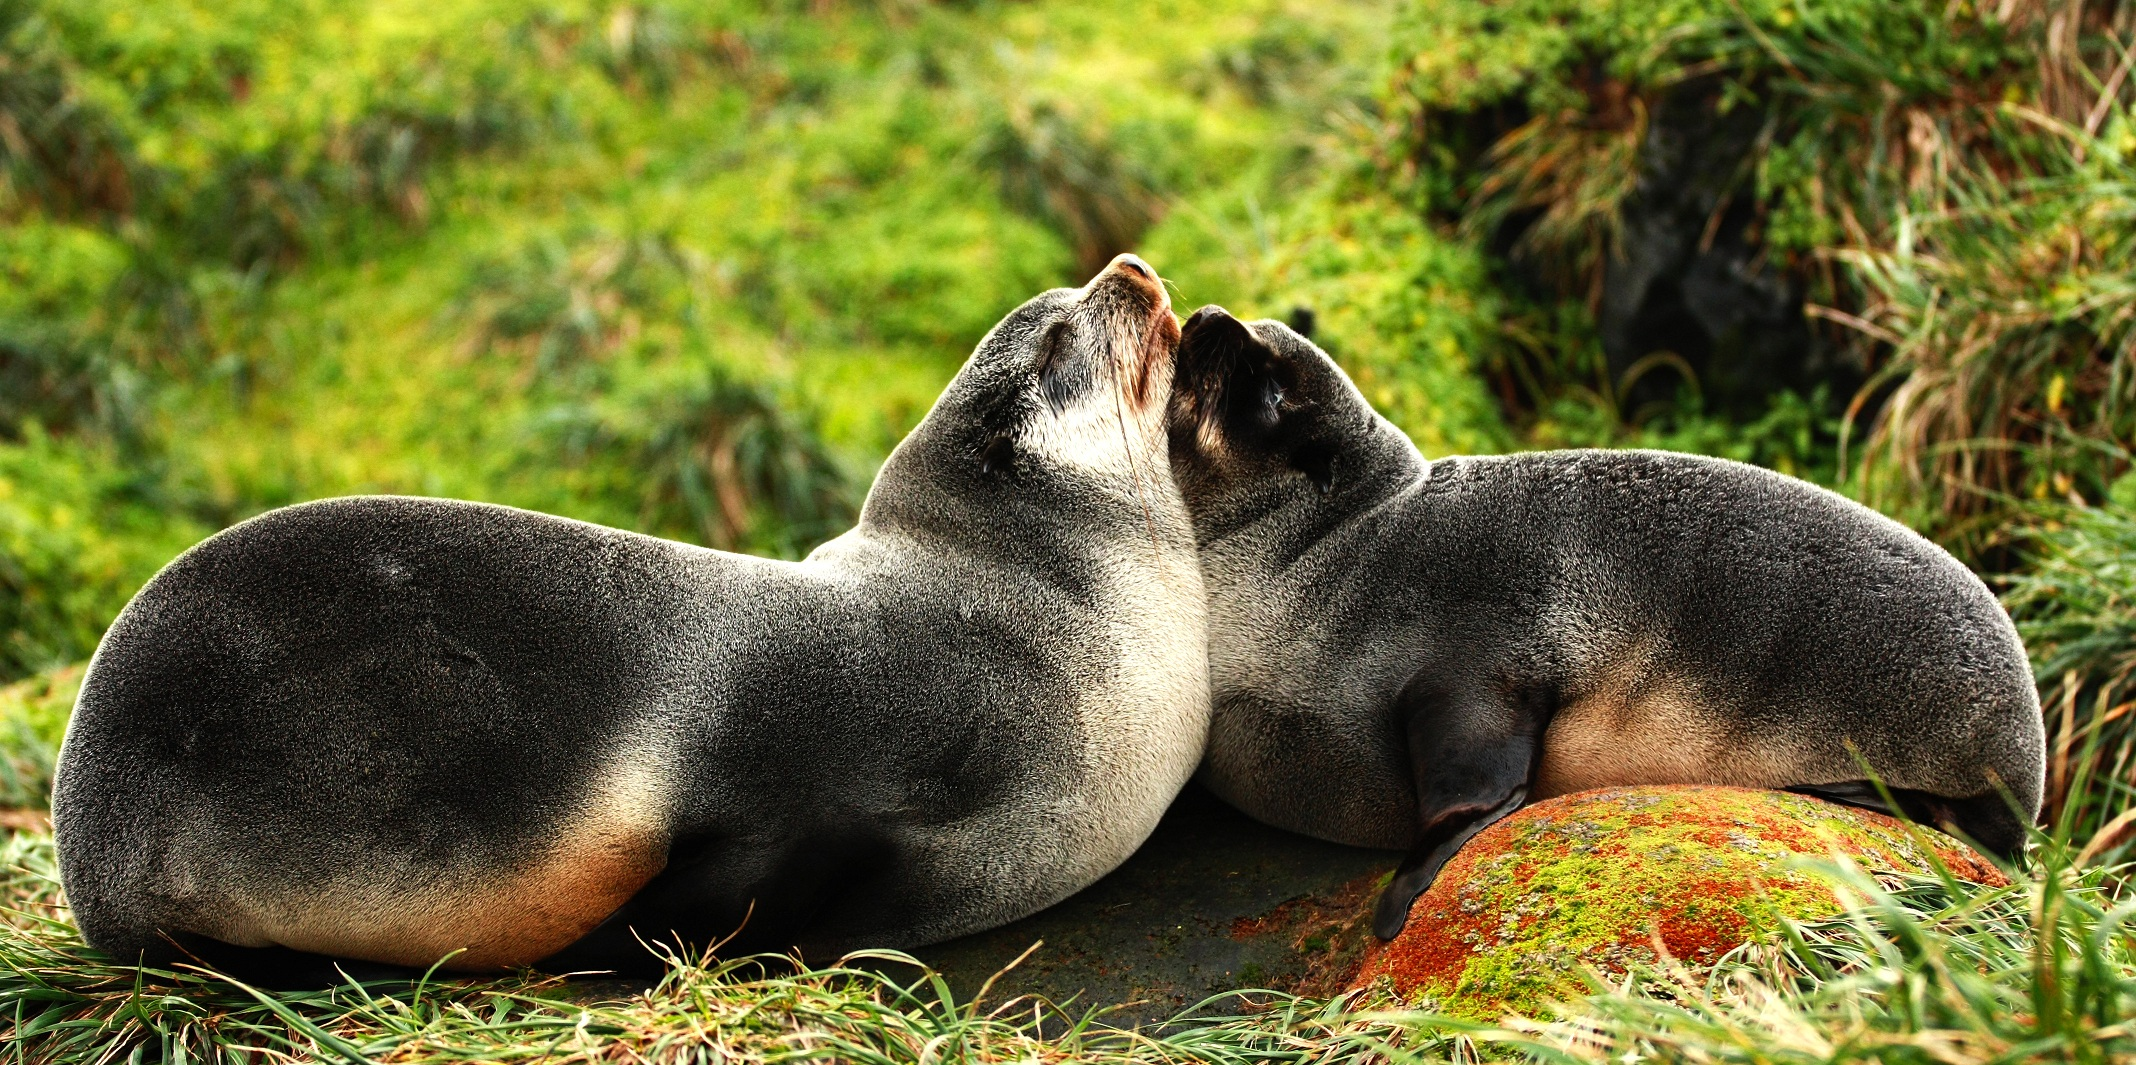 A Subantarctic fur seal mother and her pup (Picture: M. WEGE)